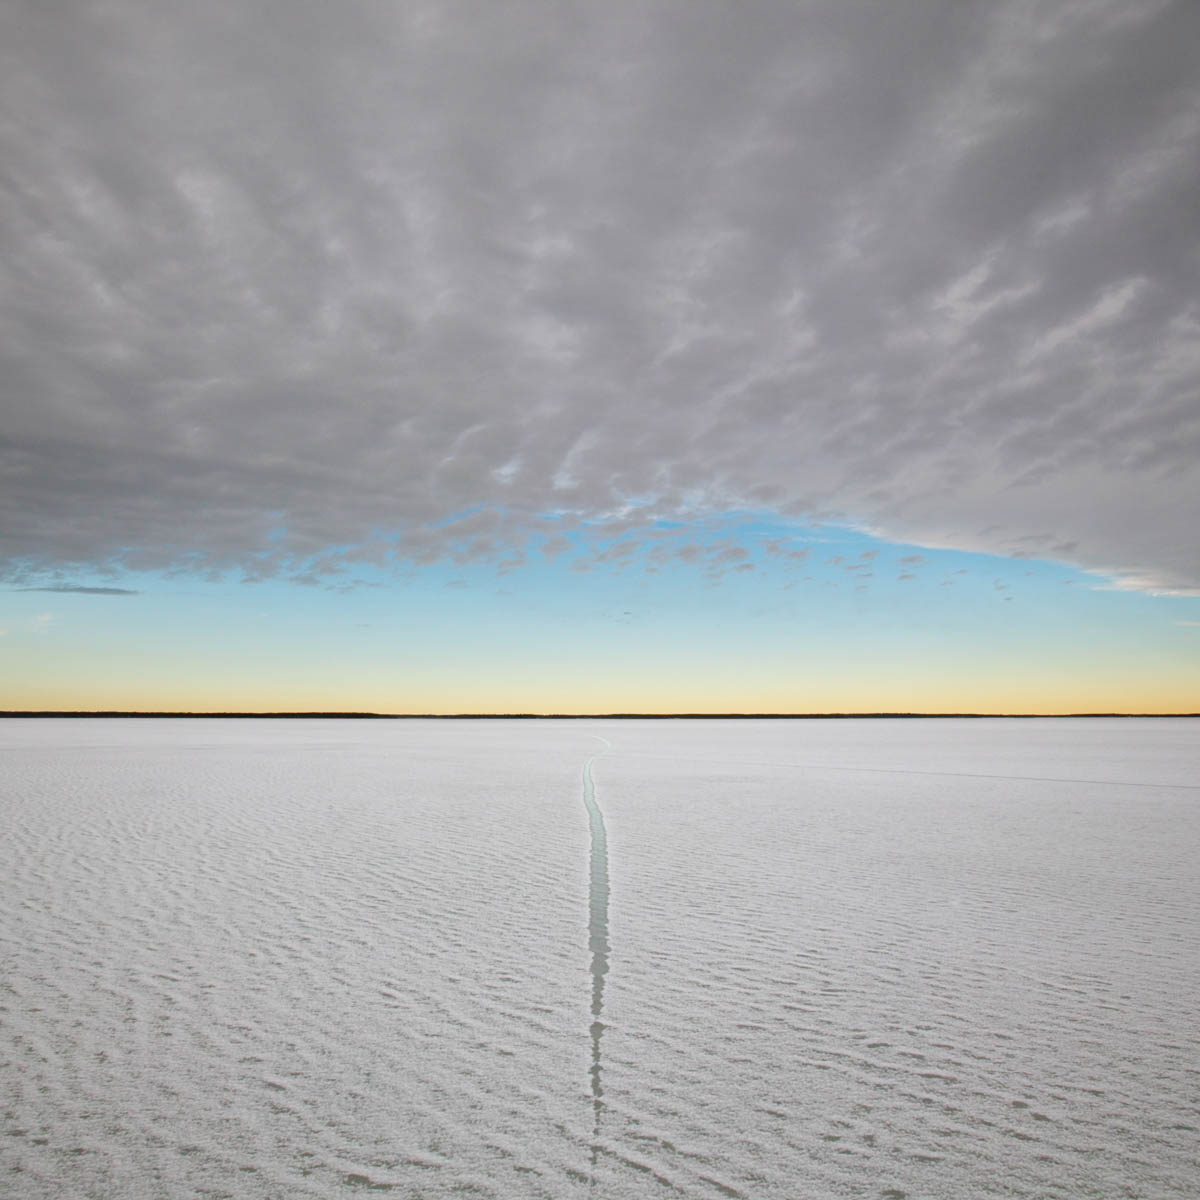 Crack in the Ice, Cooking Lake, 2004